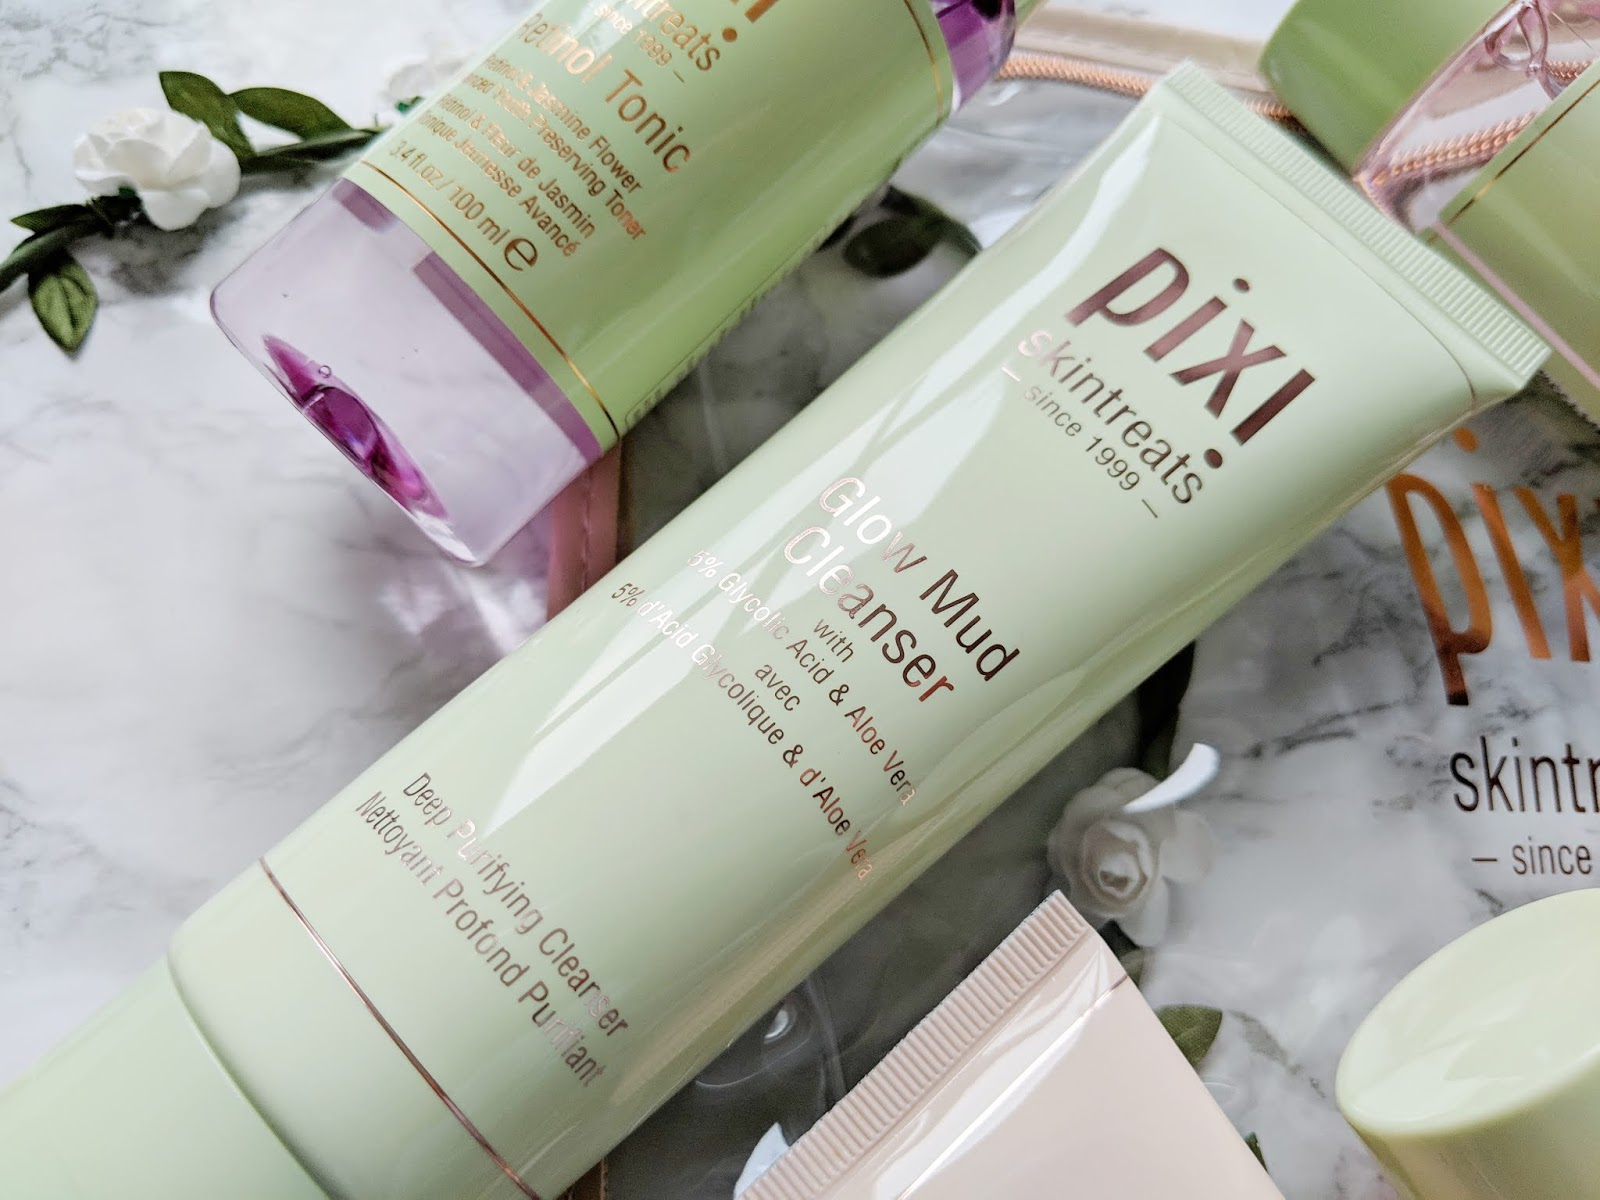 Pixi_Beauty_Glow_Mud_Cleanser